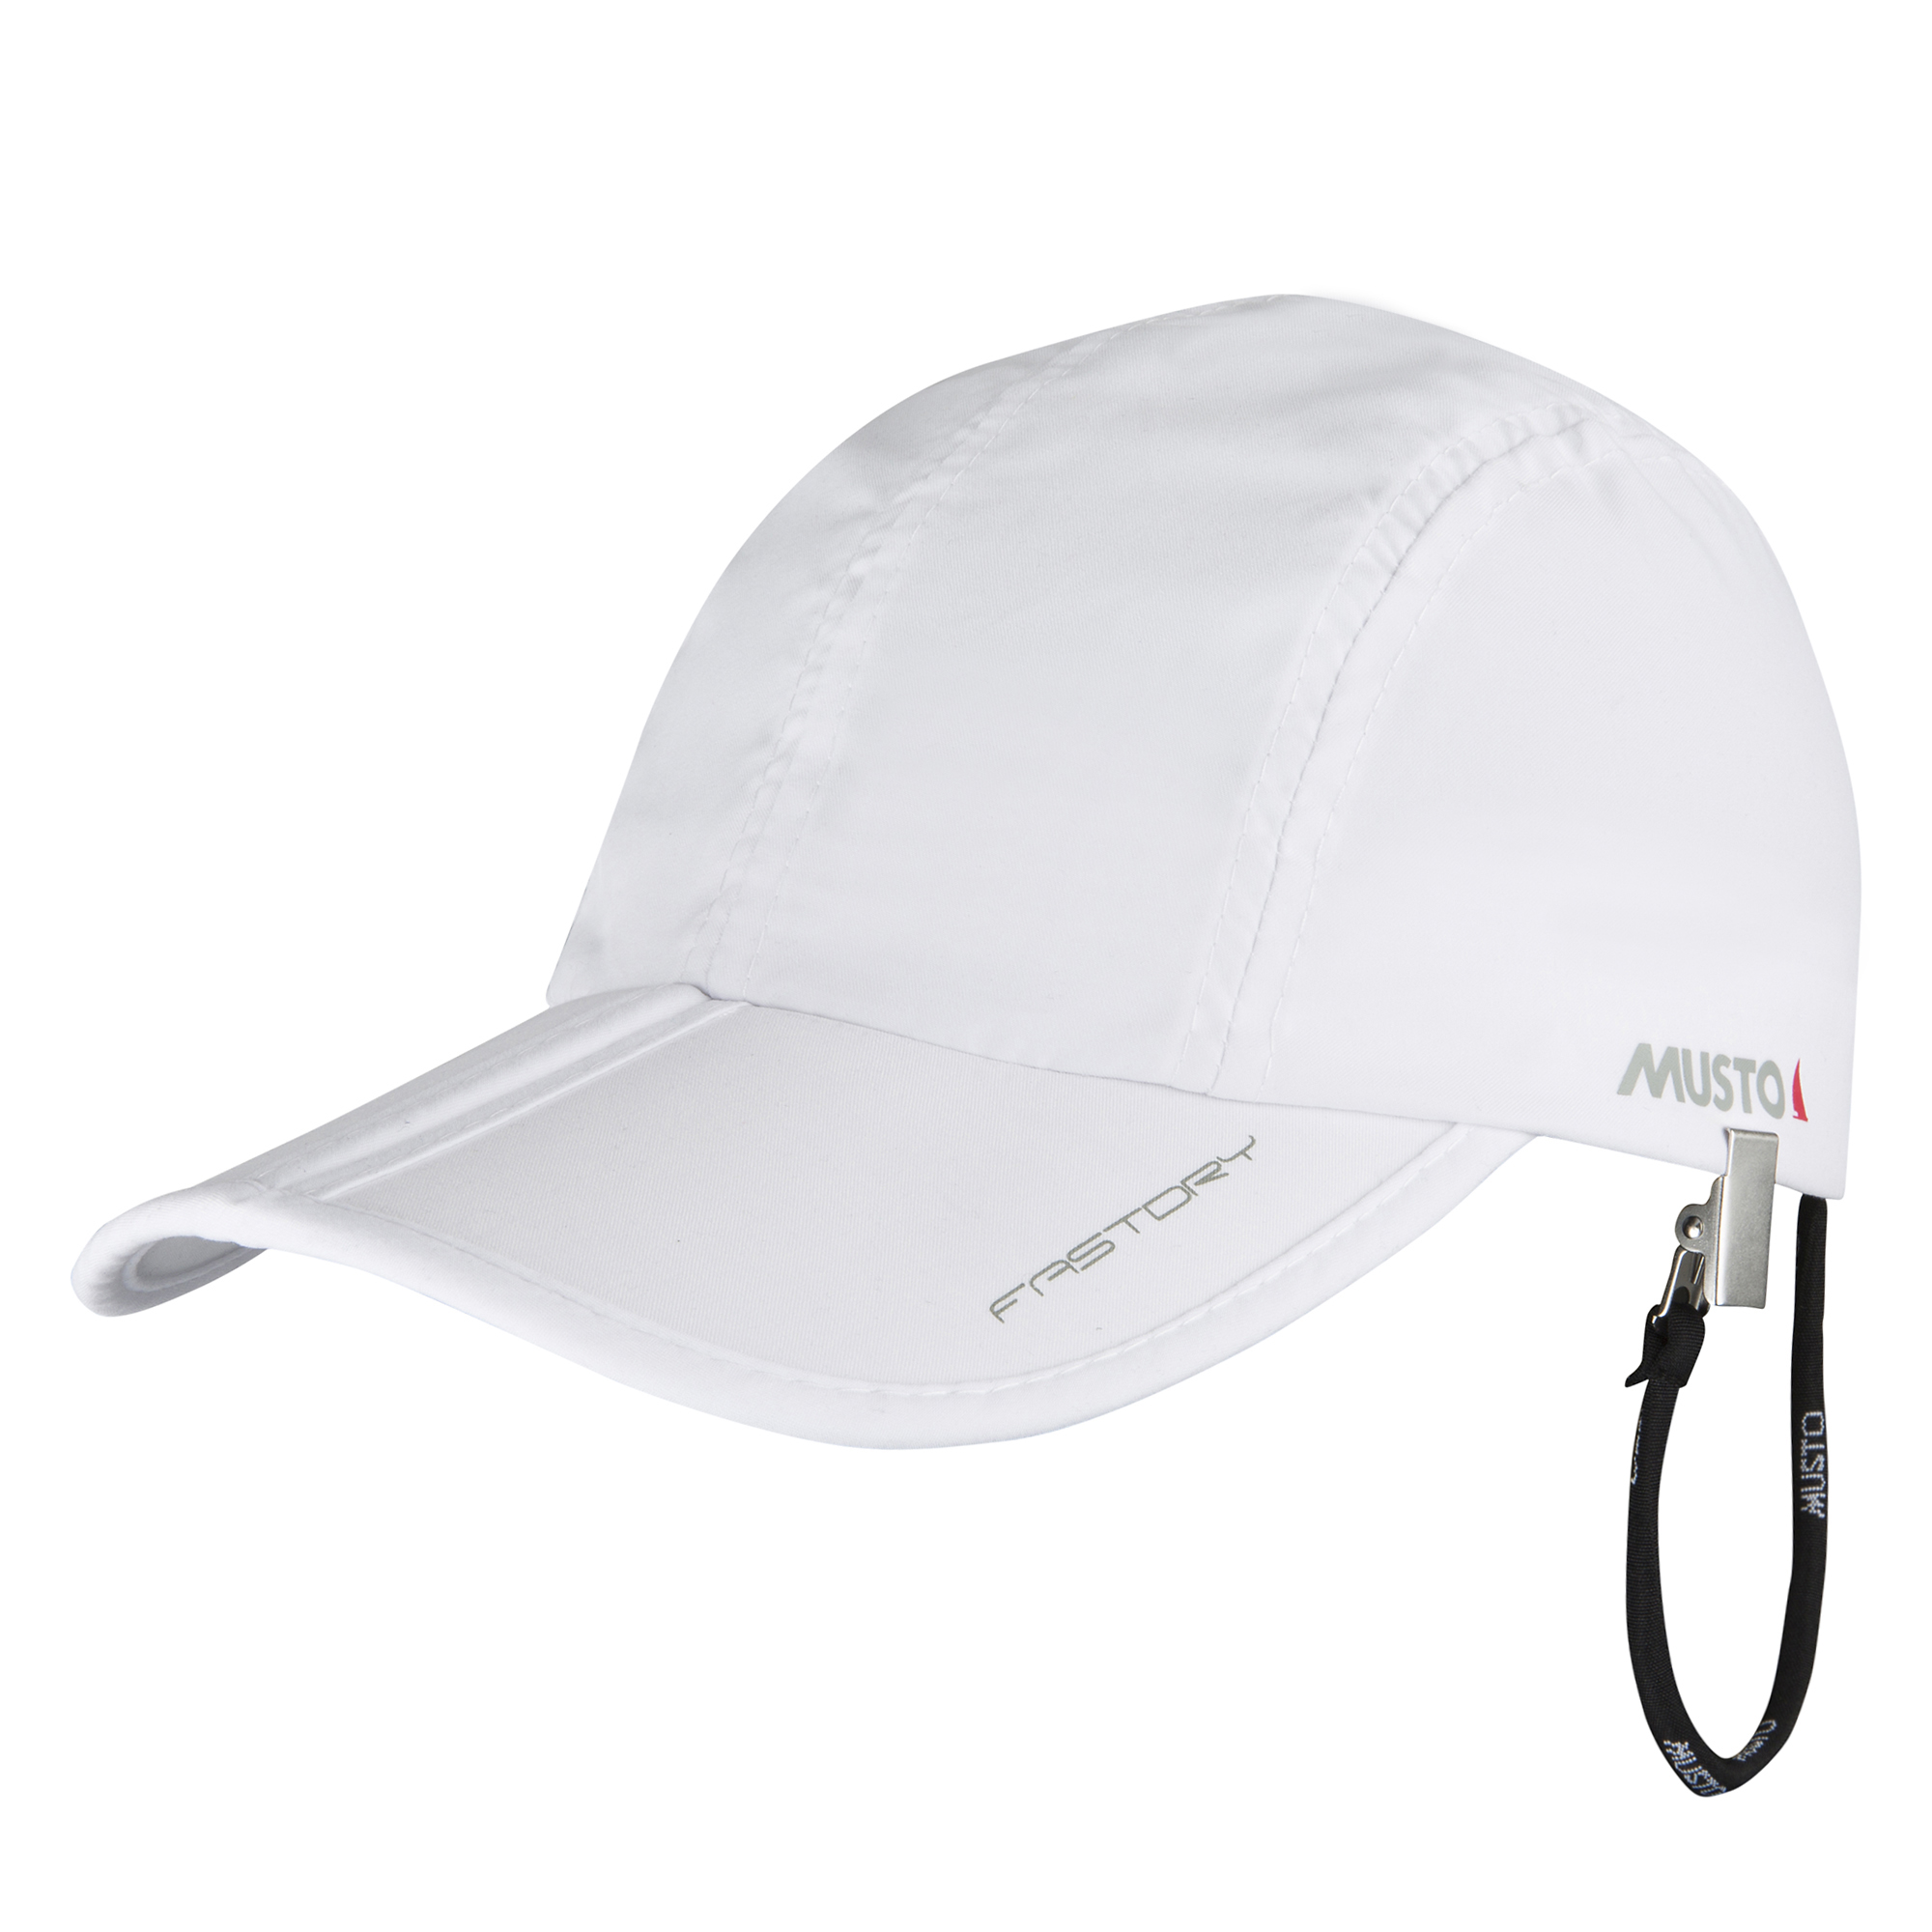 Musto Foldable Fast Dry Cap (80107, AUHD006)